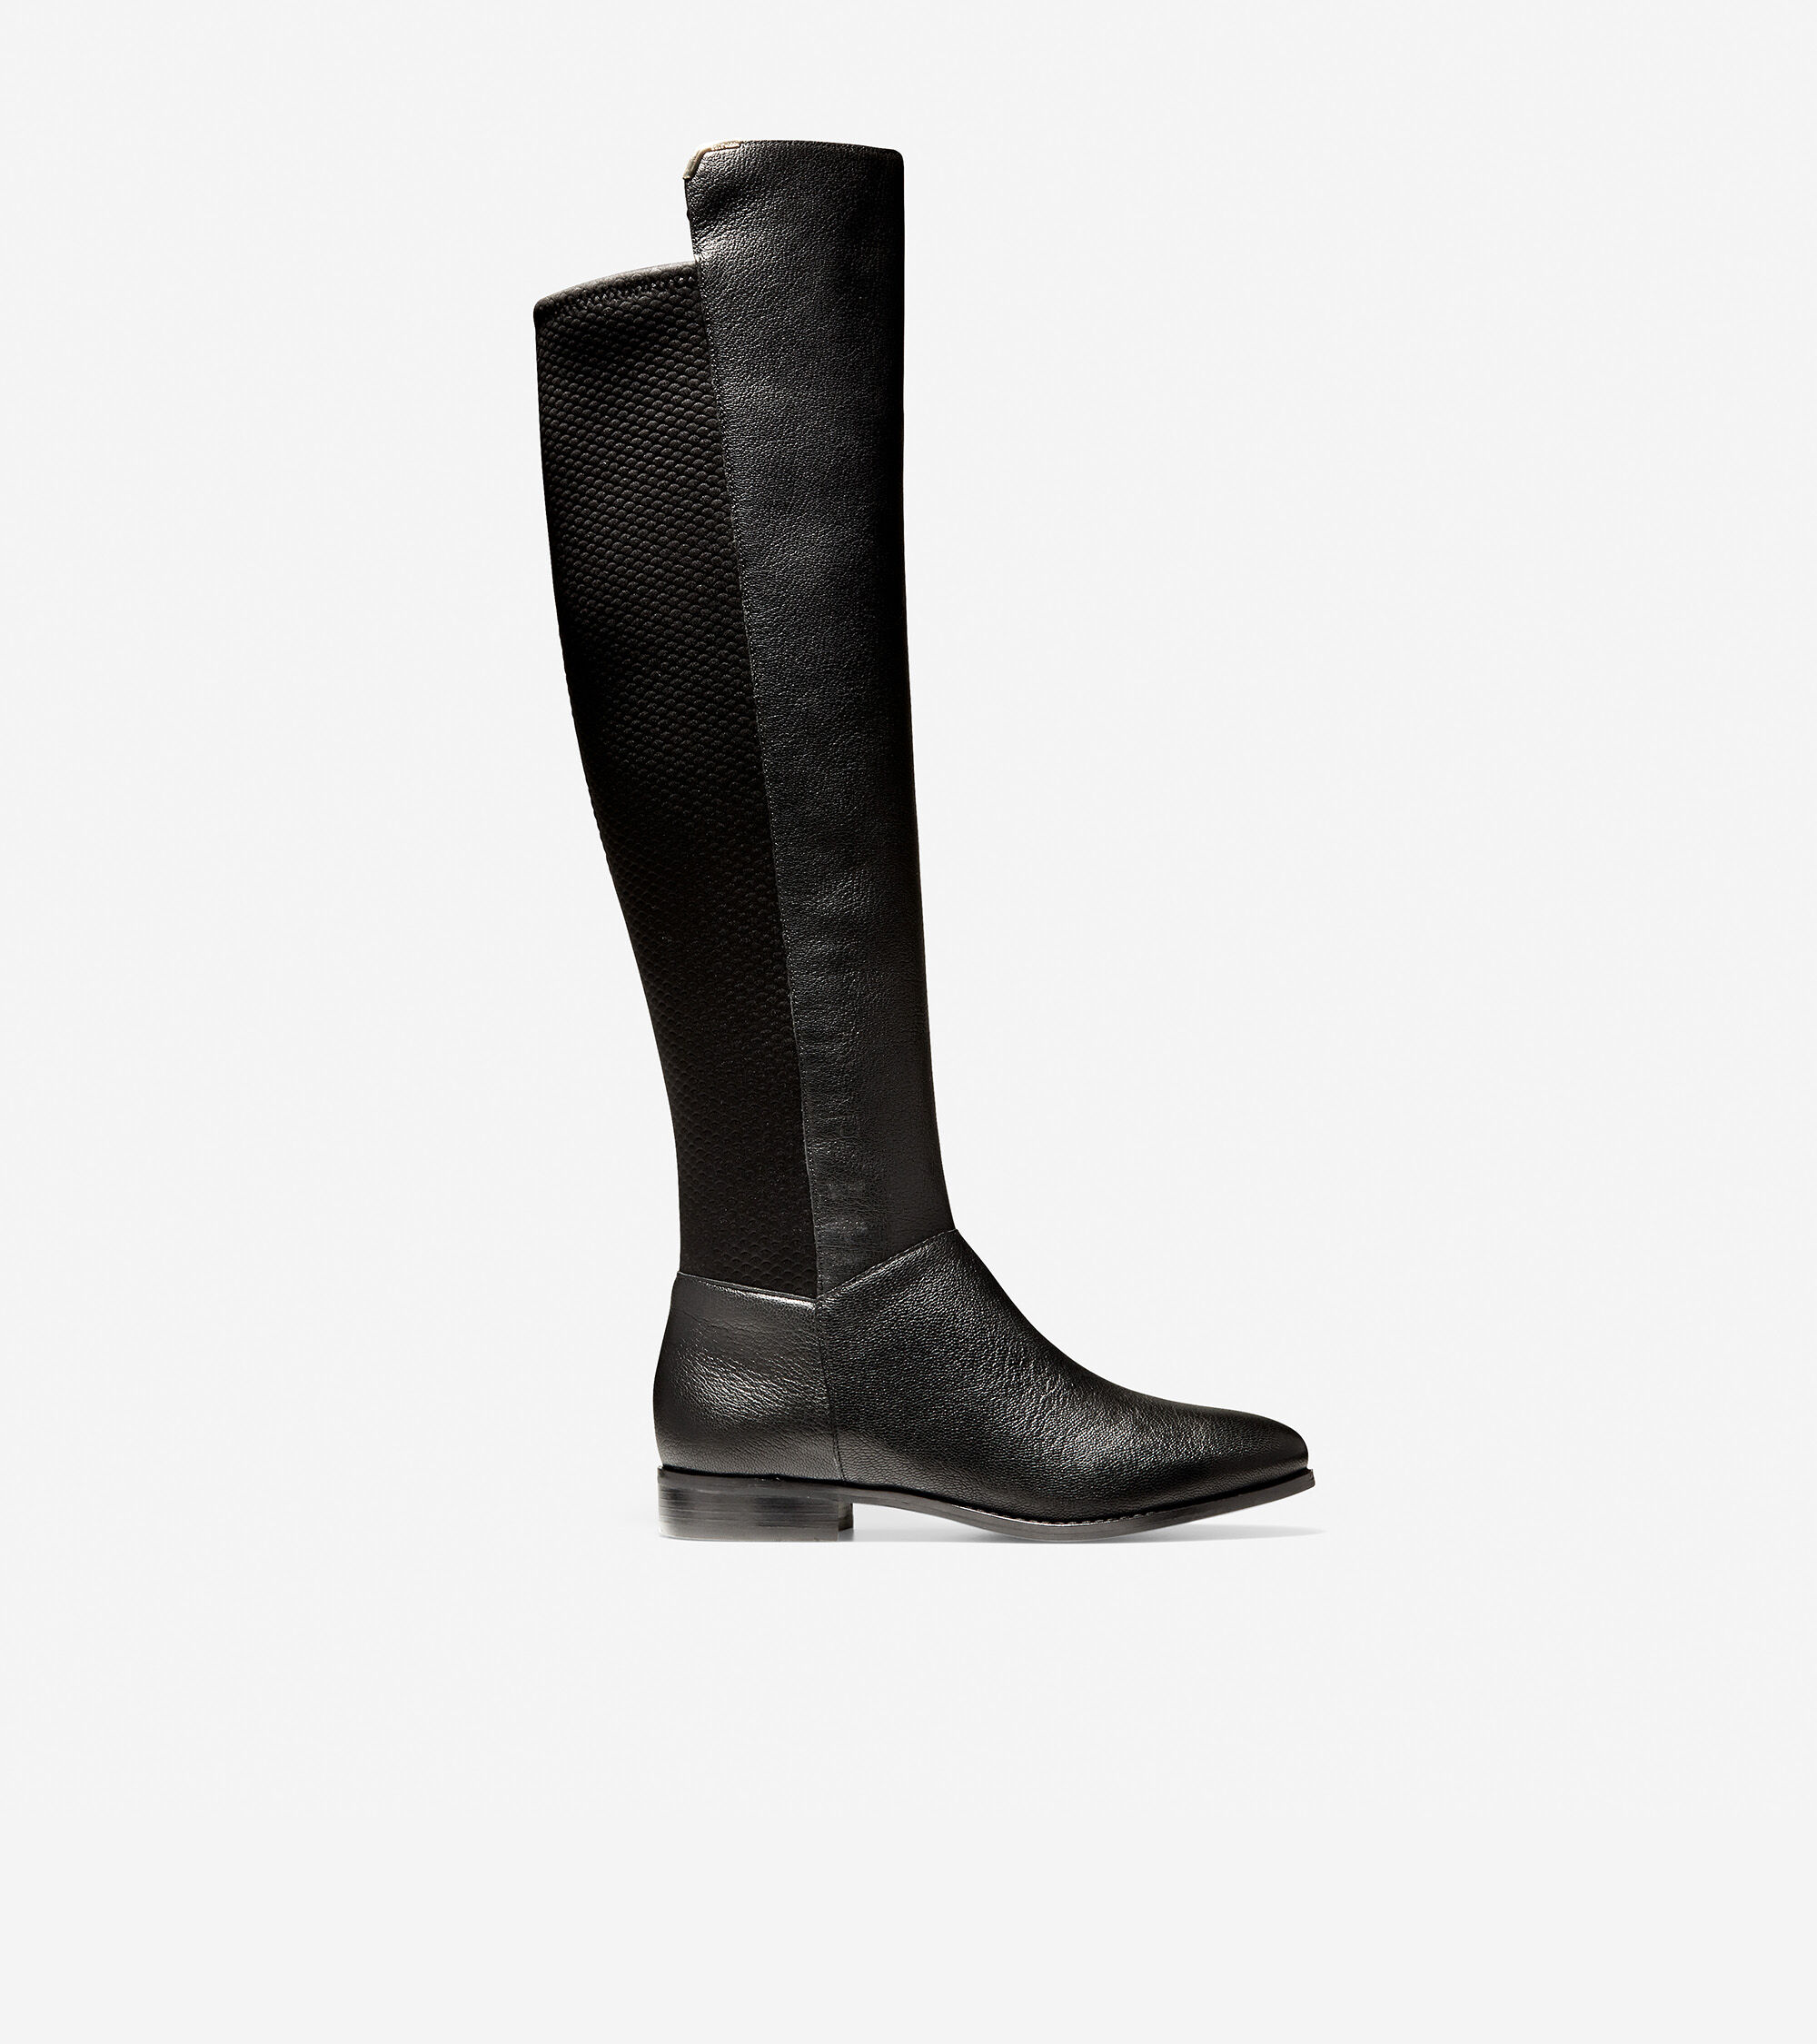 35f13c4f367 Women s Dutchess Over The Knee Boots in Black